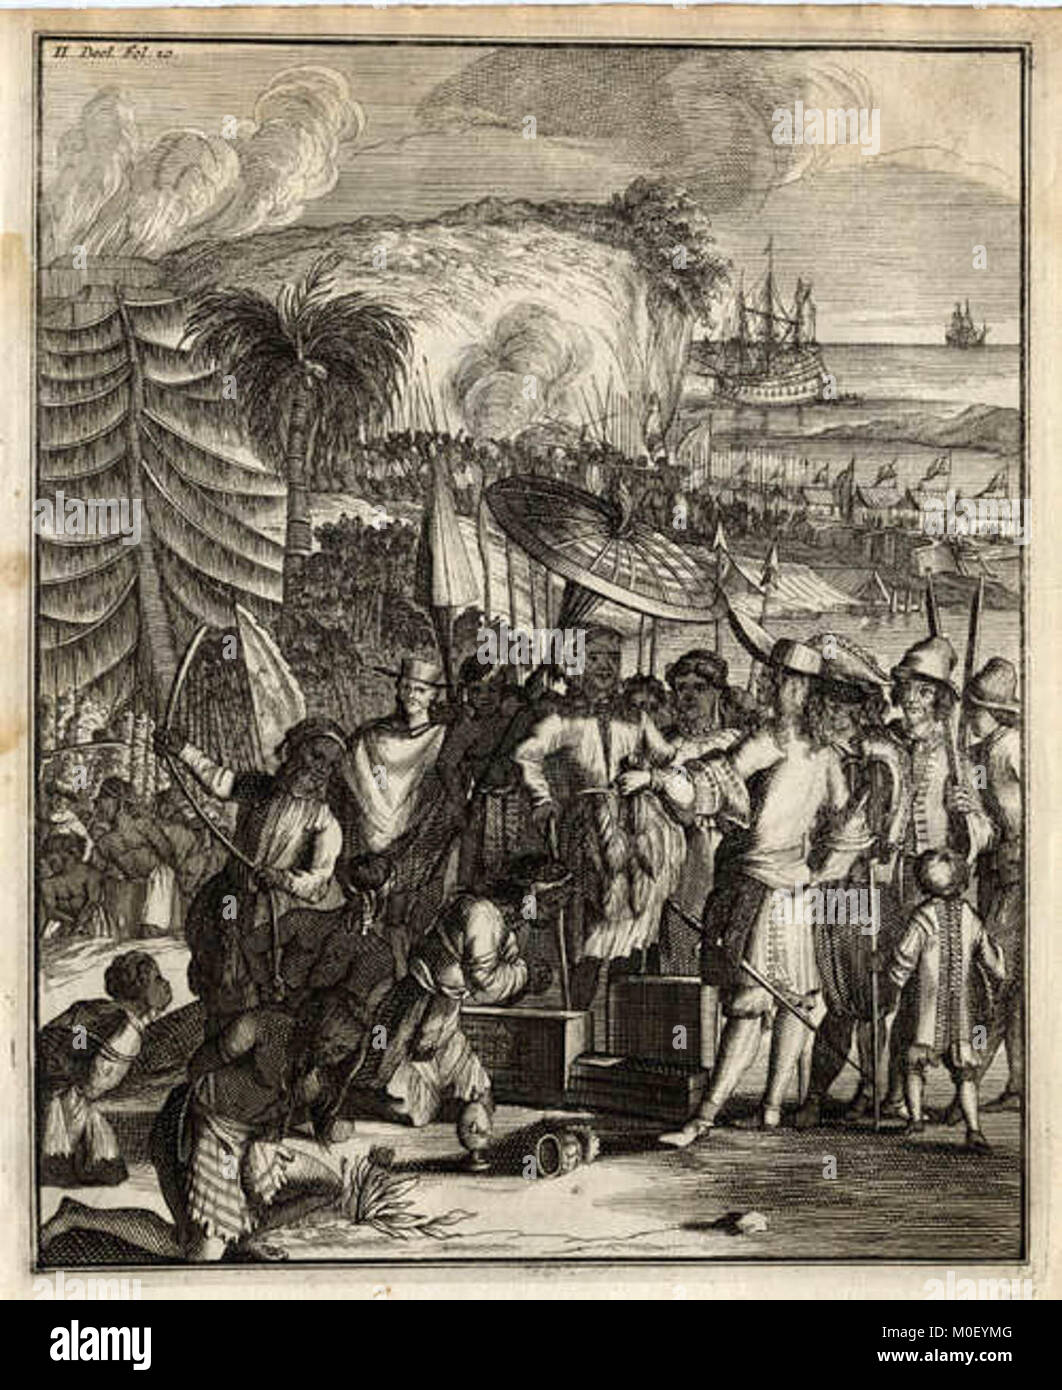 Natives of Arakan sell slaves to the Dutch East India Company, c. 1663 - Stock Image